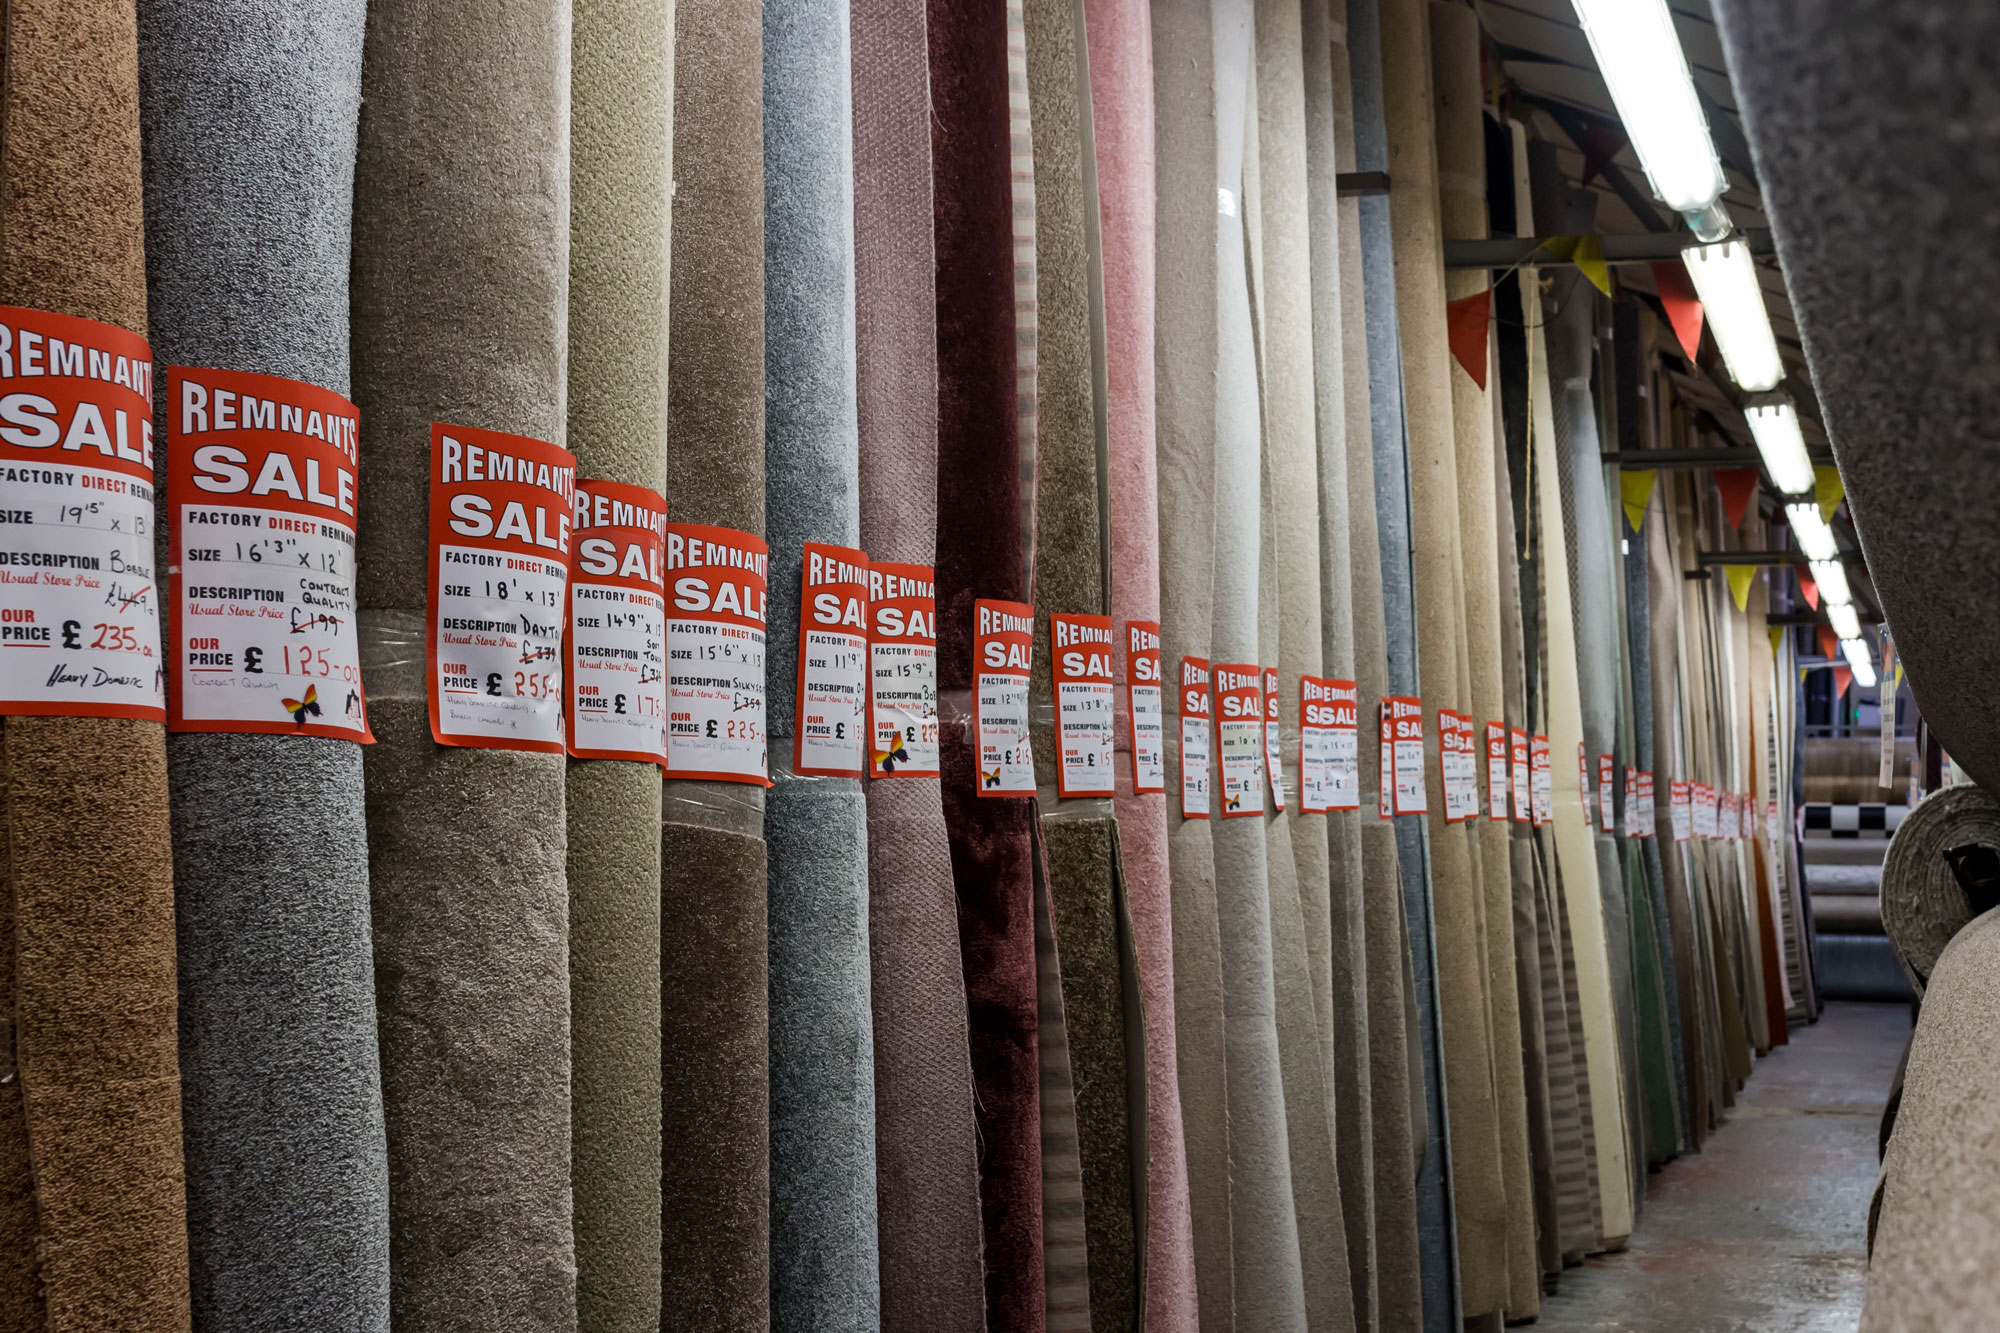 carpet castle | carpets at half high street prices!